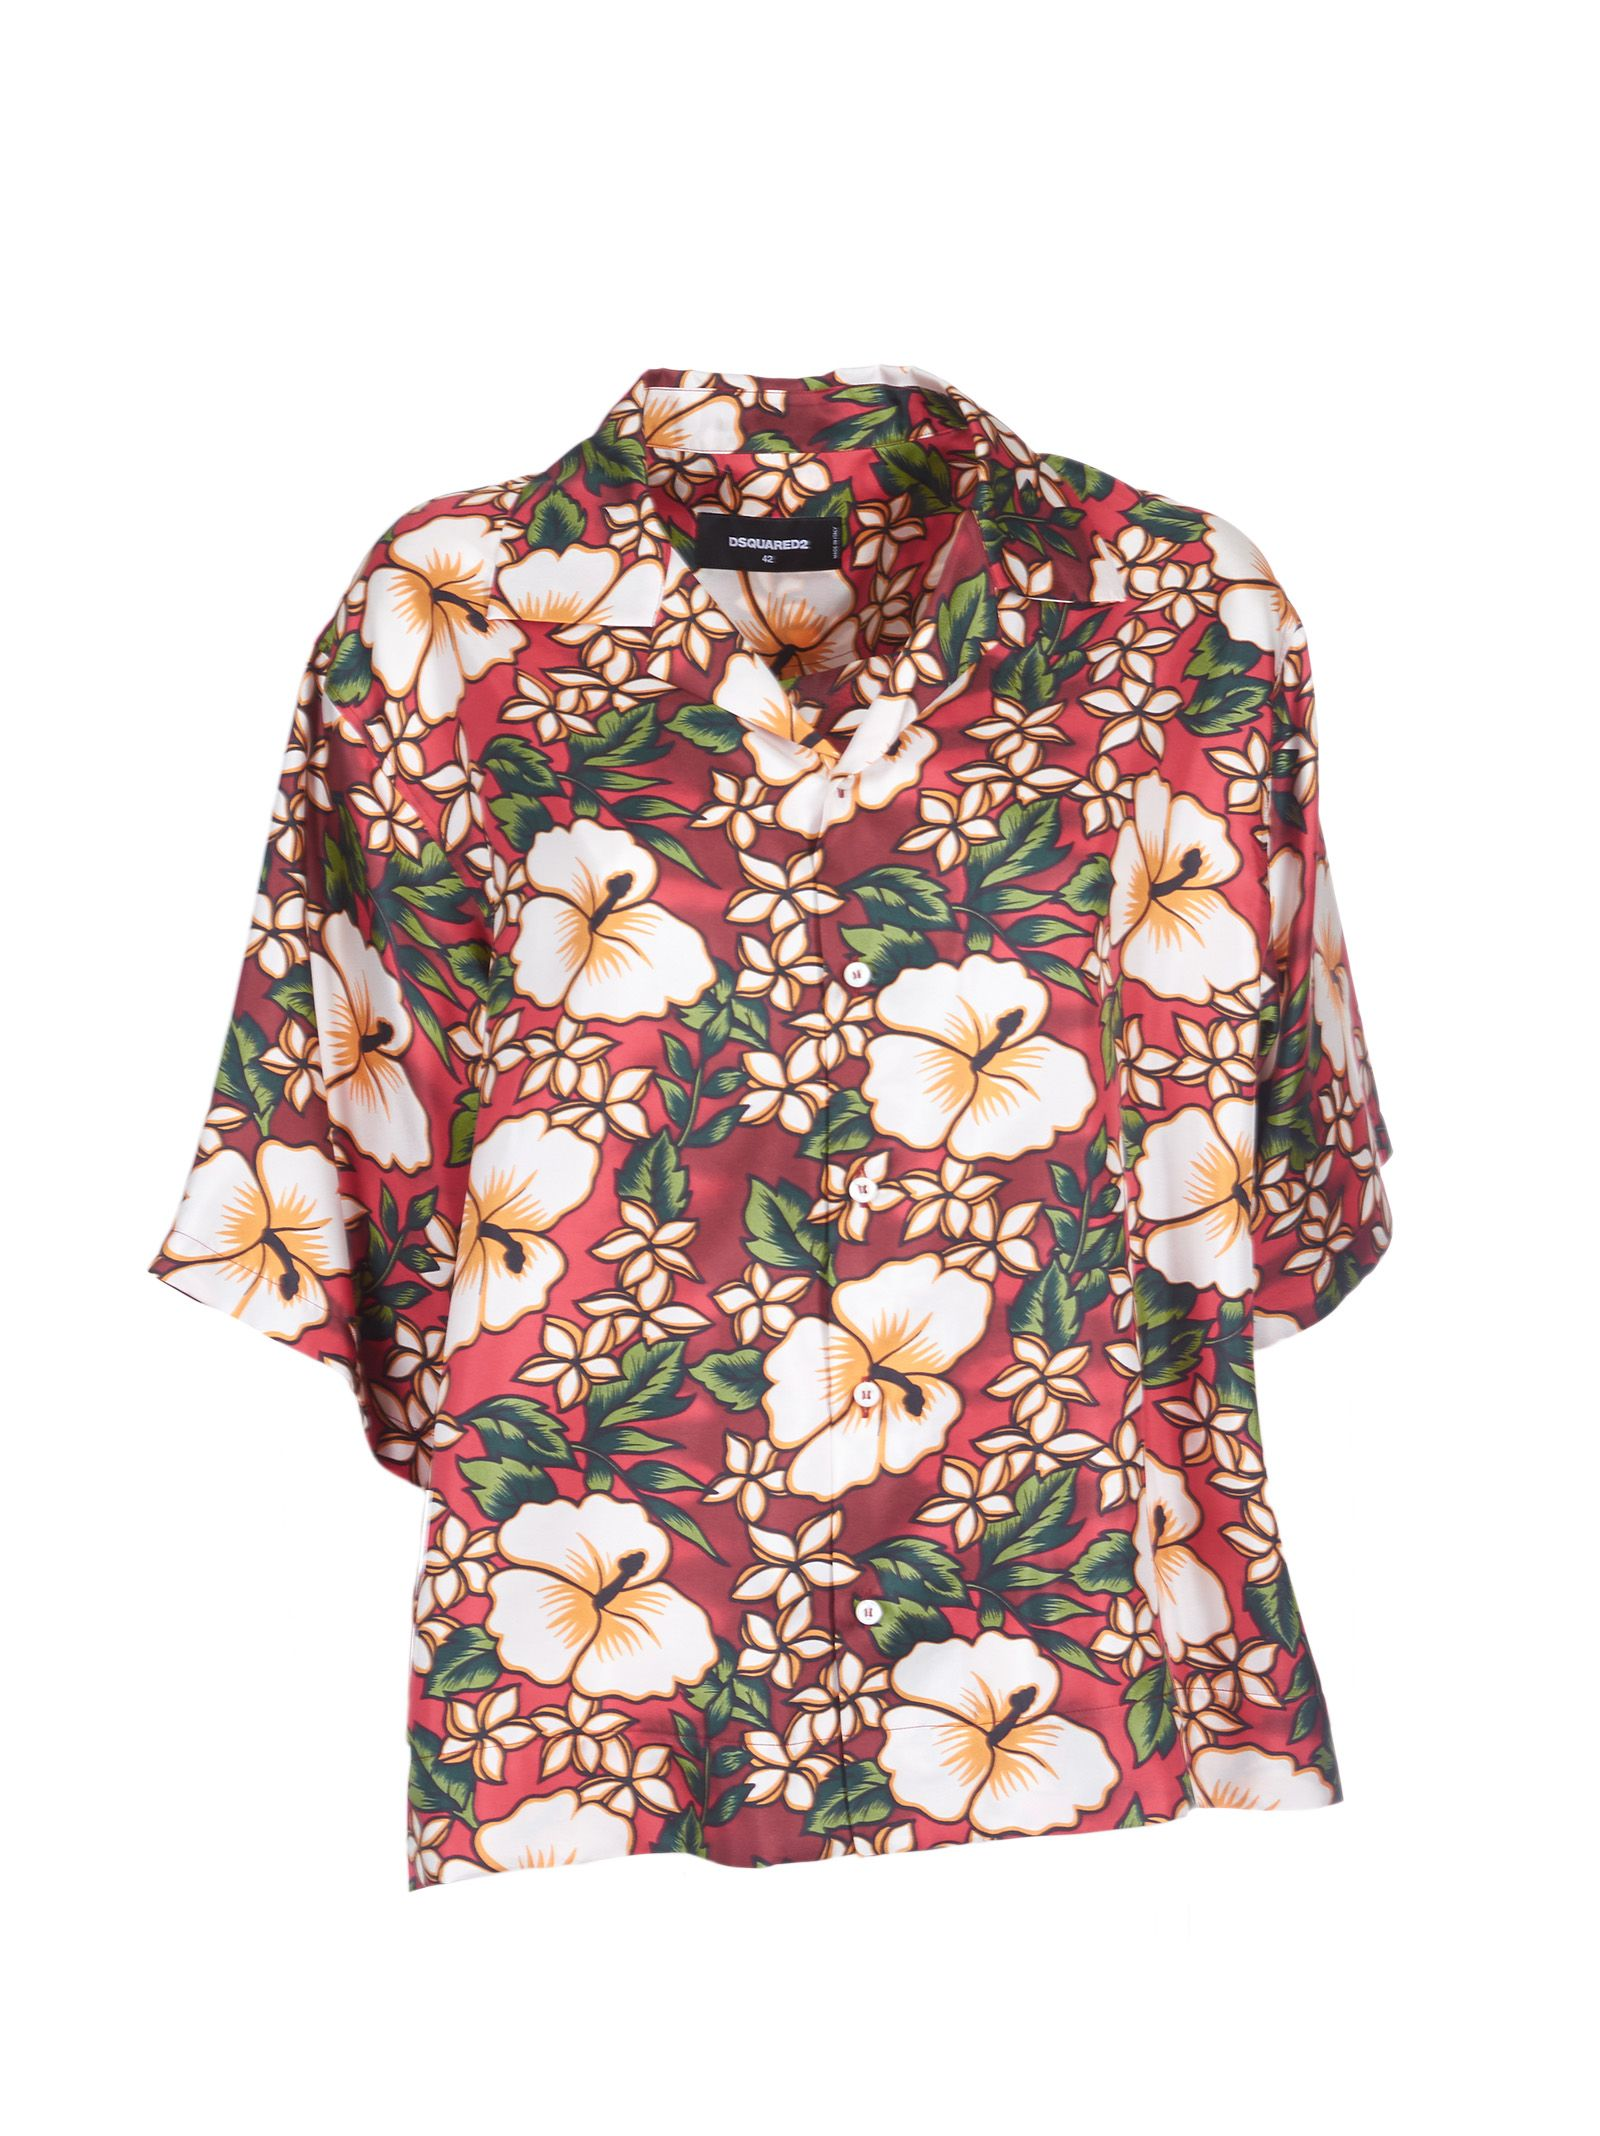 9690a6496 italist | Best price in the market for Dsquared2 Dsquared2 Hawaiian ...